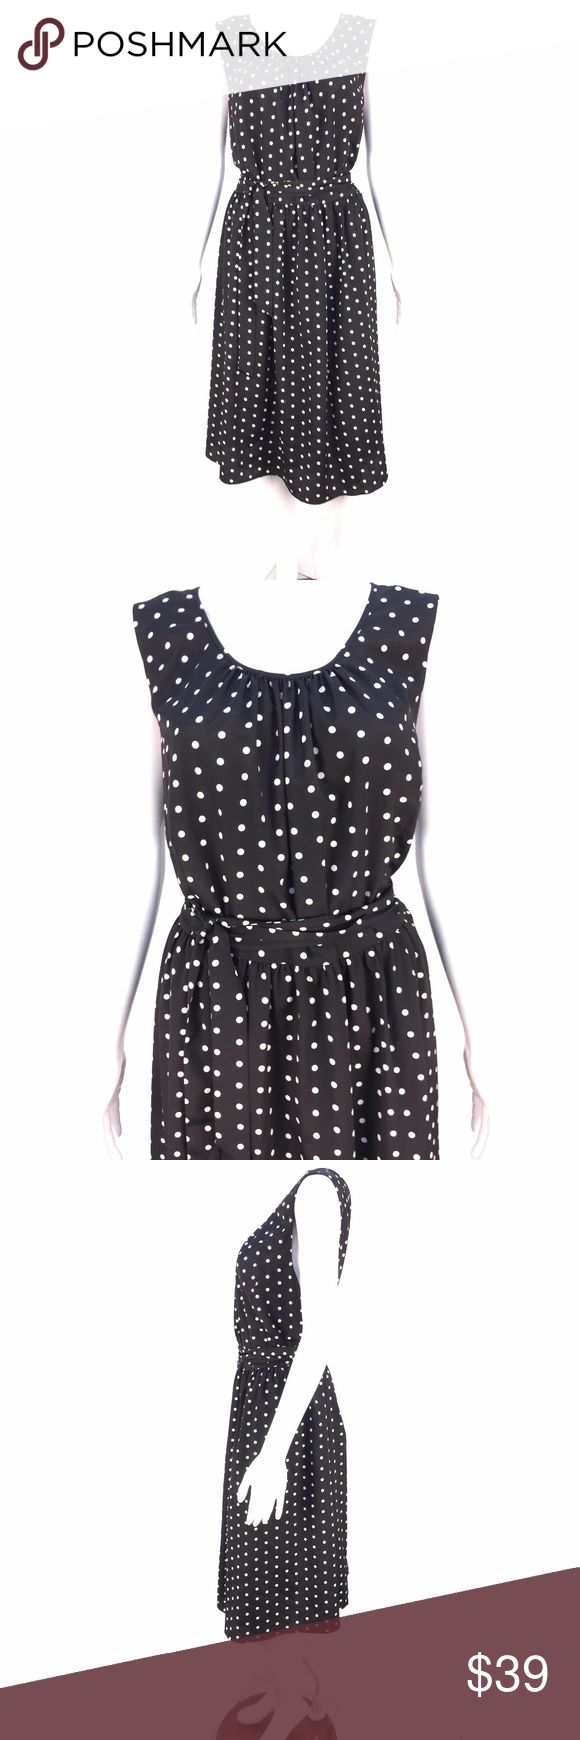 "Talbots Woman Plus Sz 16W Black White Dress *  Talbots Woman Plus Sz 16W Black White Polka Dot Sleeveless Dress Belted  * Super cute retro-style black and white polka dots; coordinating tie at waist; midi length; pull on style; keyhole closure in back  * Please see below for measurements; all measurements taken with garment lying flat.  Please see all photos for complete condition assessment.  Shoulder to Shoulder: 15"" Armpit to Armpit (Bust): 24"" Waist: 22"" Overall Length: 42"" Sleeve: N/A…"